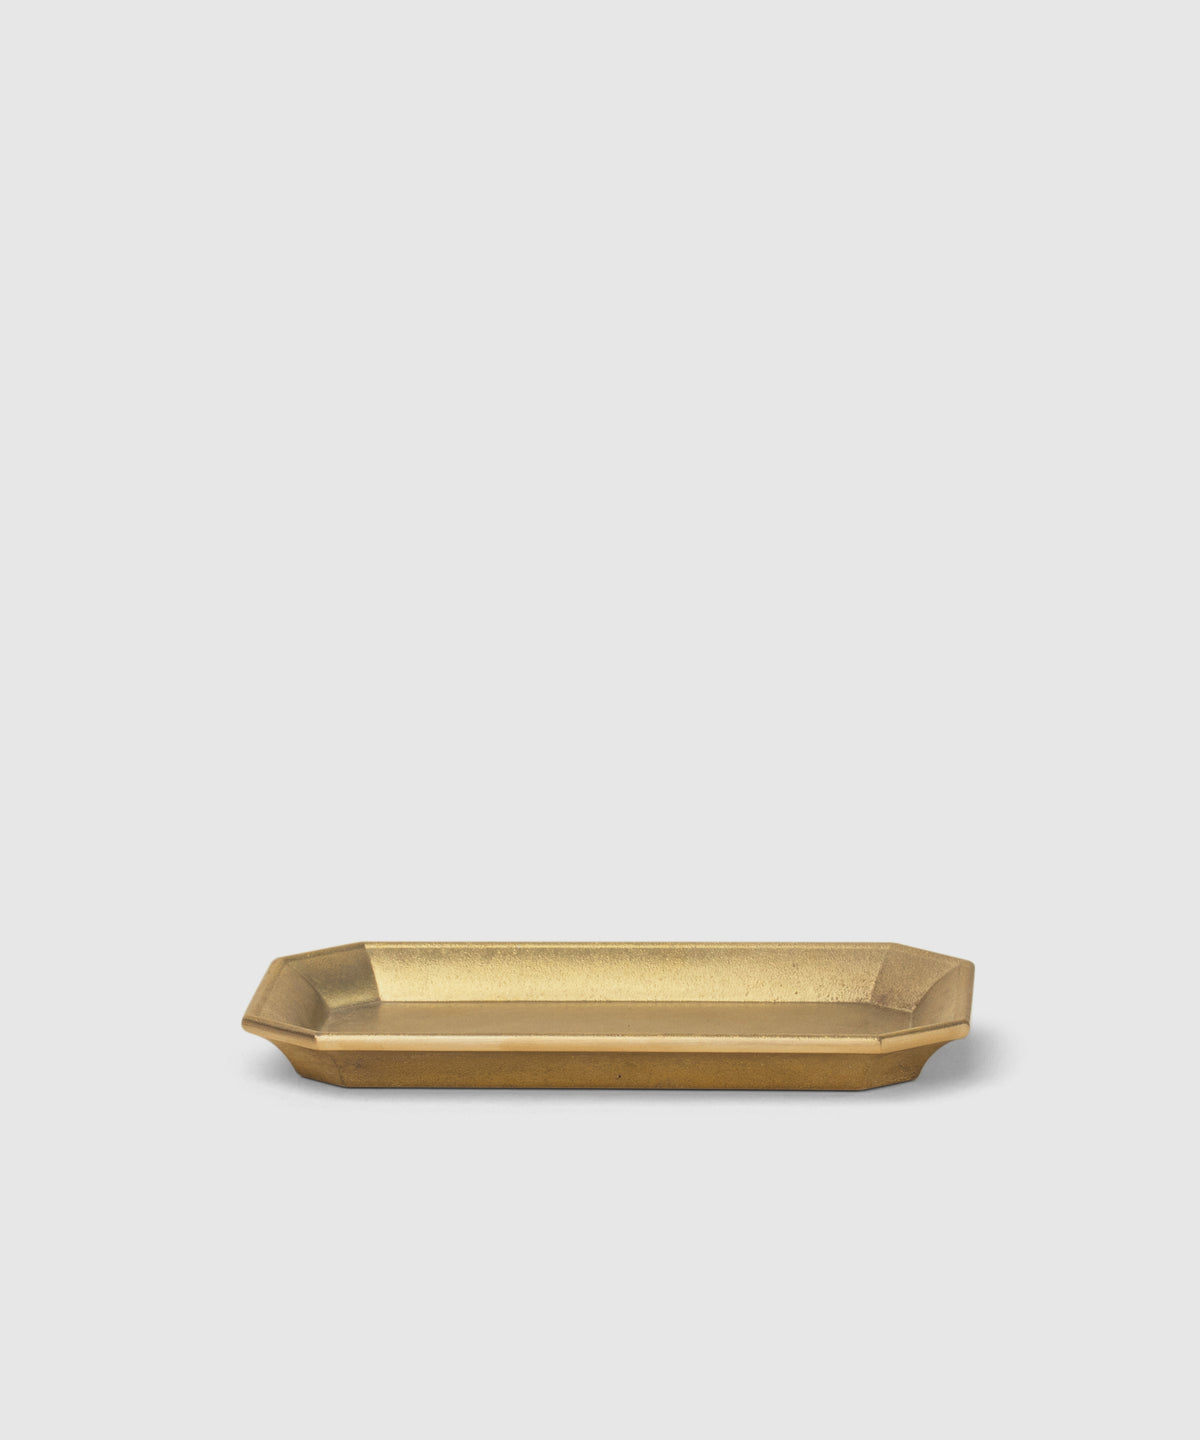 Tidy Brass Organizing Tray – Medium